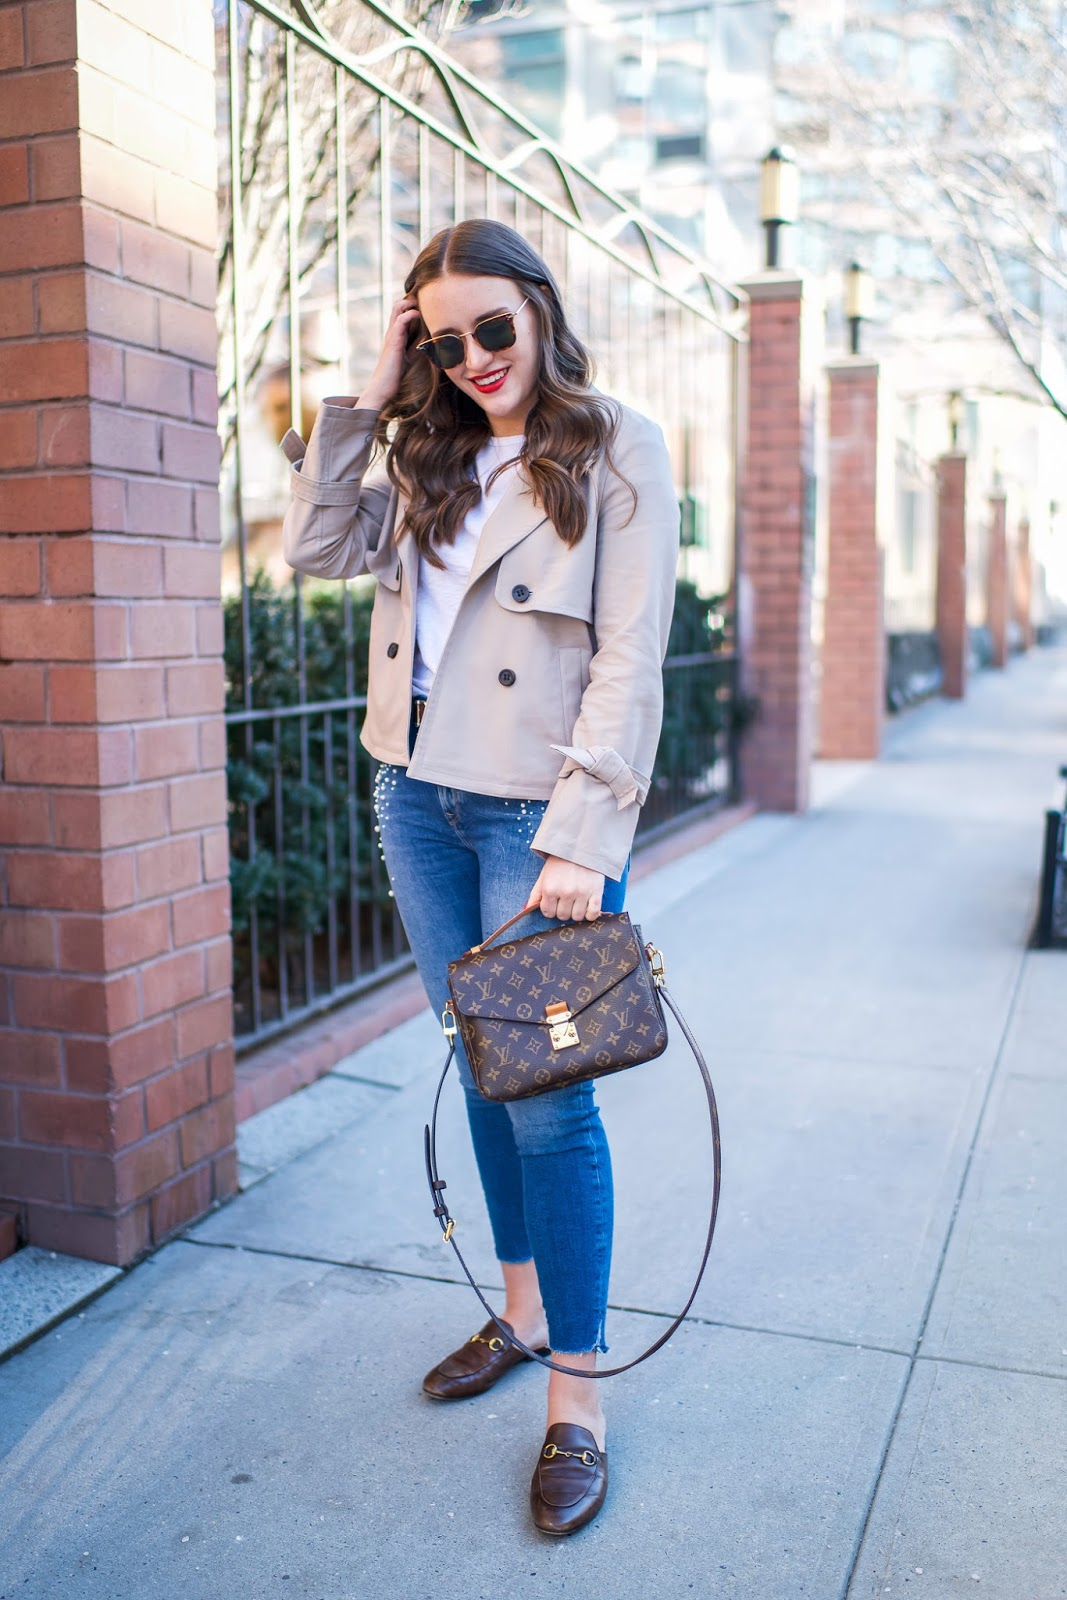 Cute Outfit by popular New York style blogger Covering the Bases